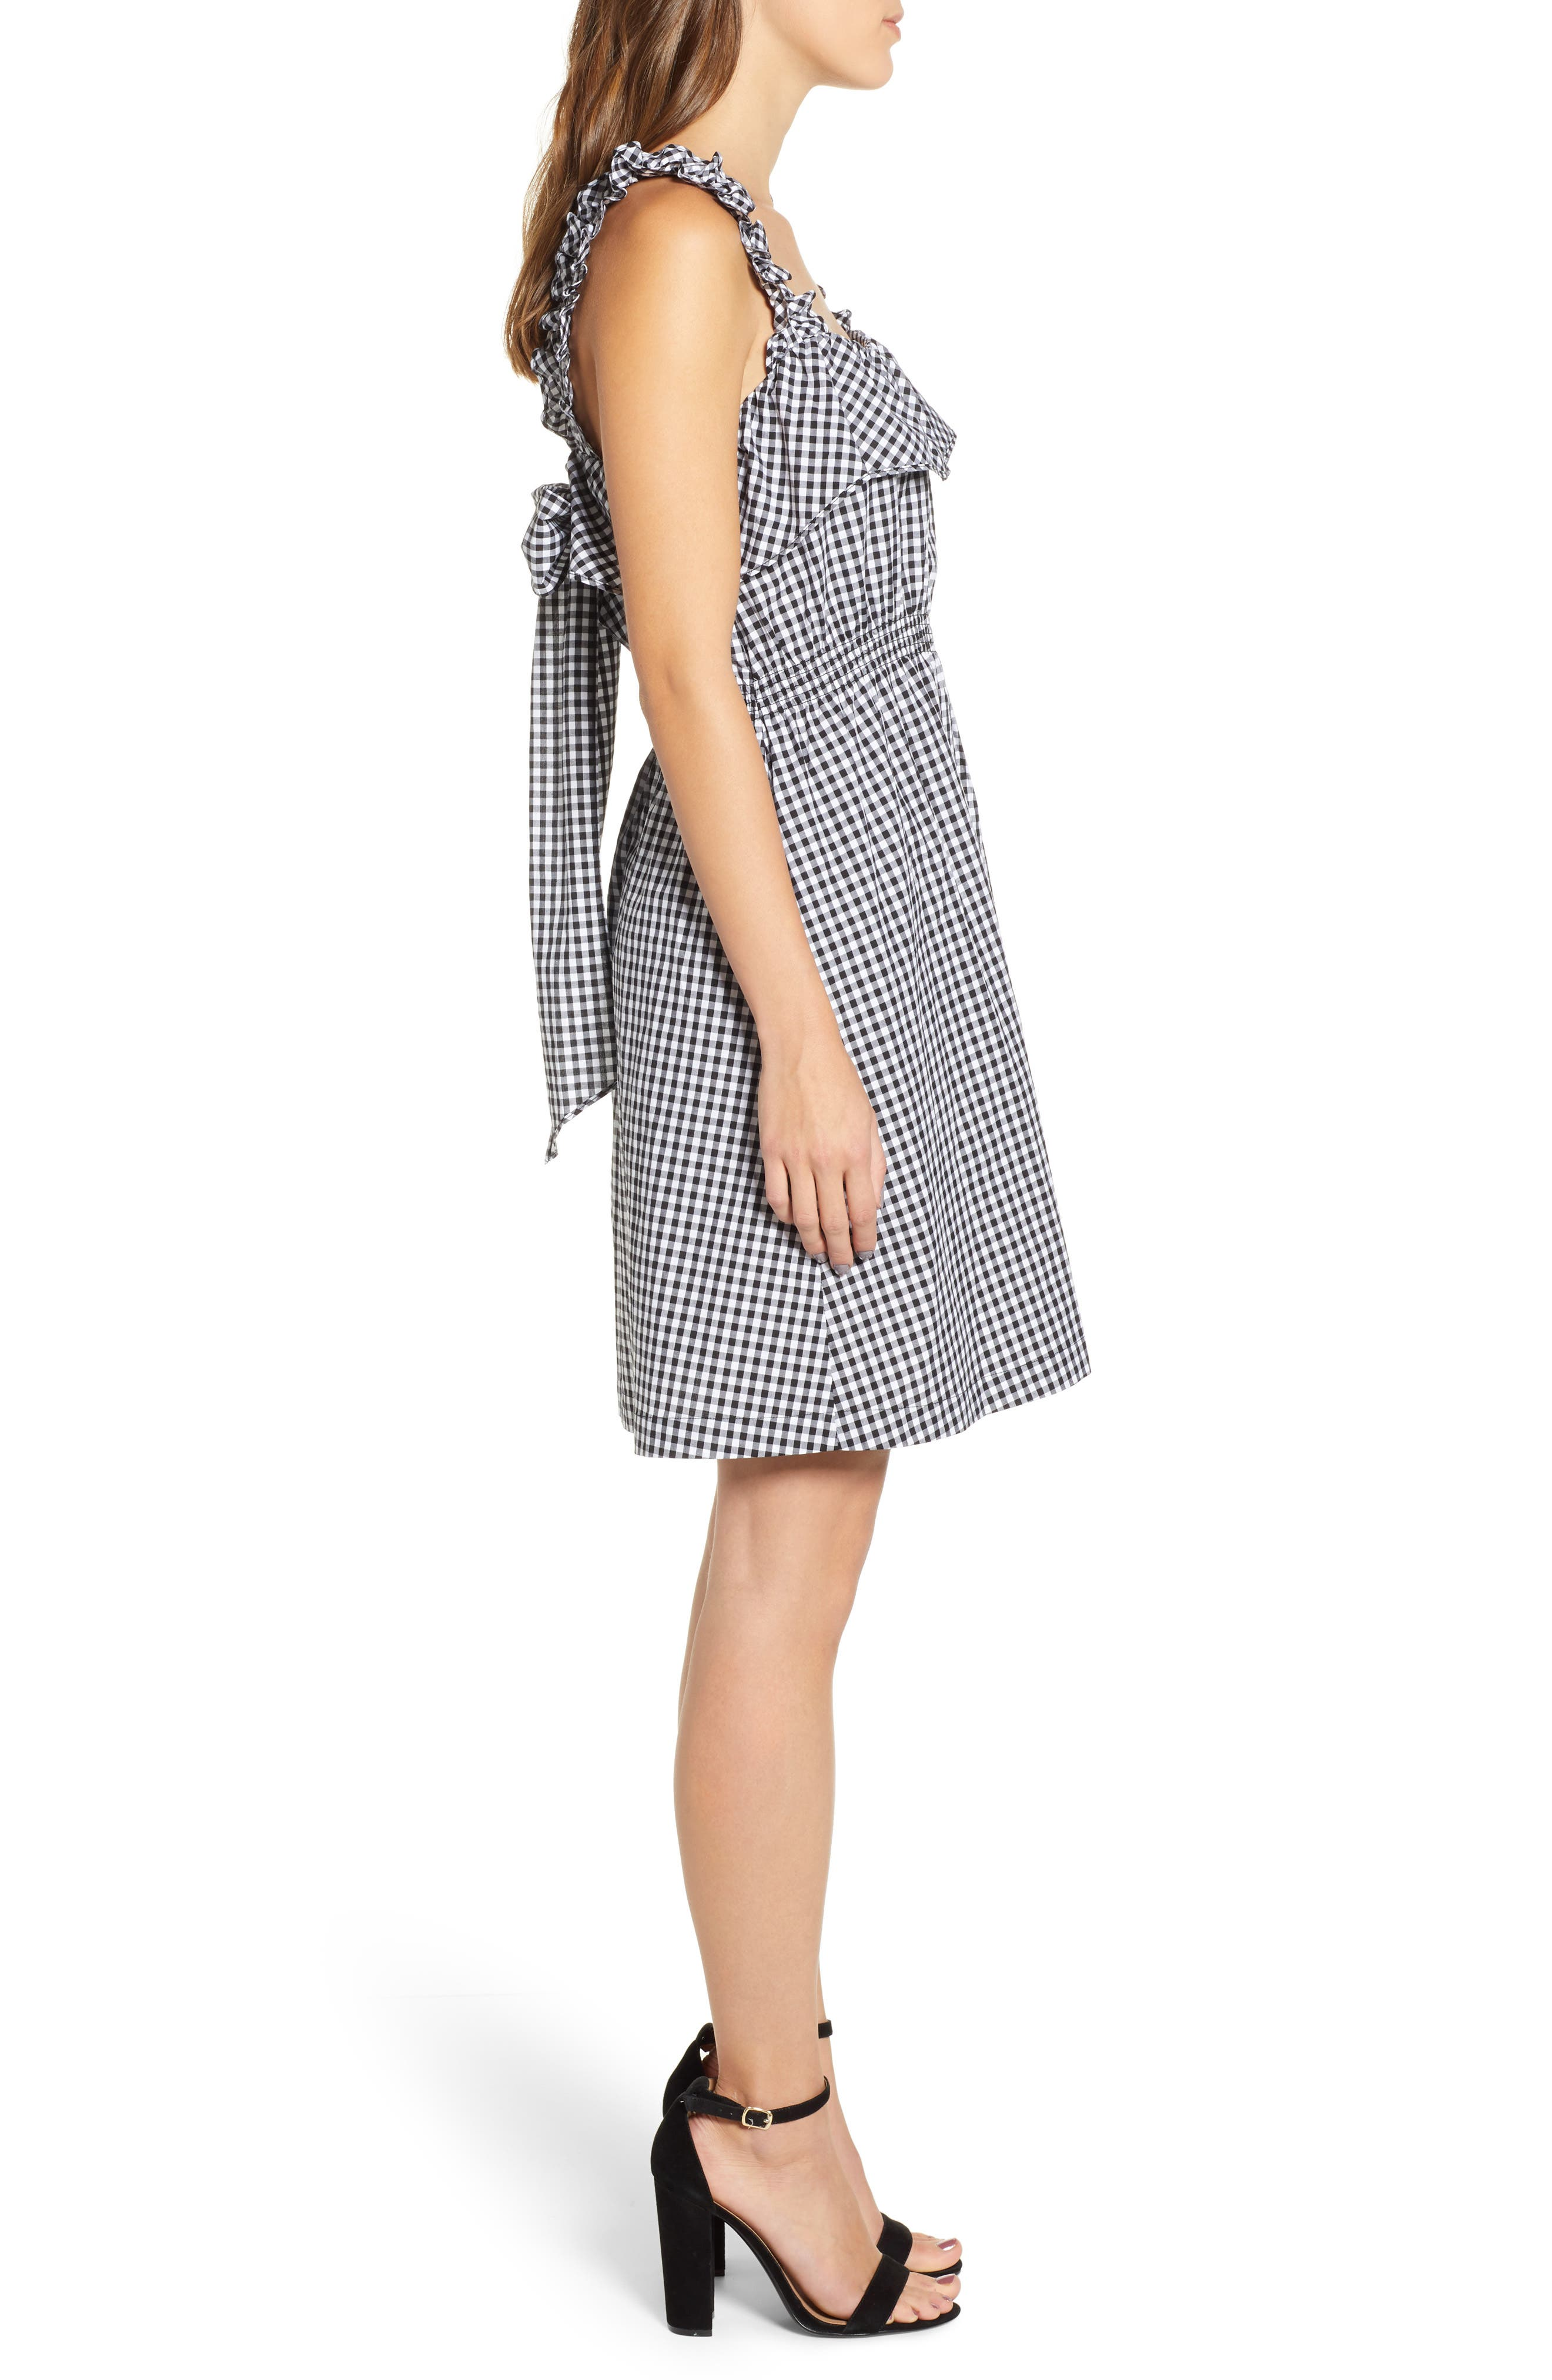 7 FOR ALL MANKIND<SUP>®</SUP>, Gingham Ruffle Dress, Alternate thumbnail 4, color, 005